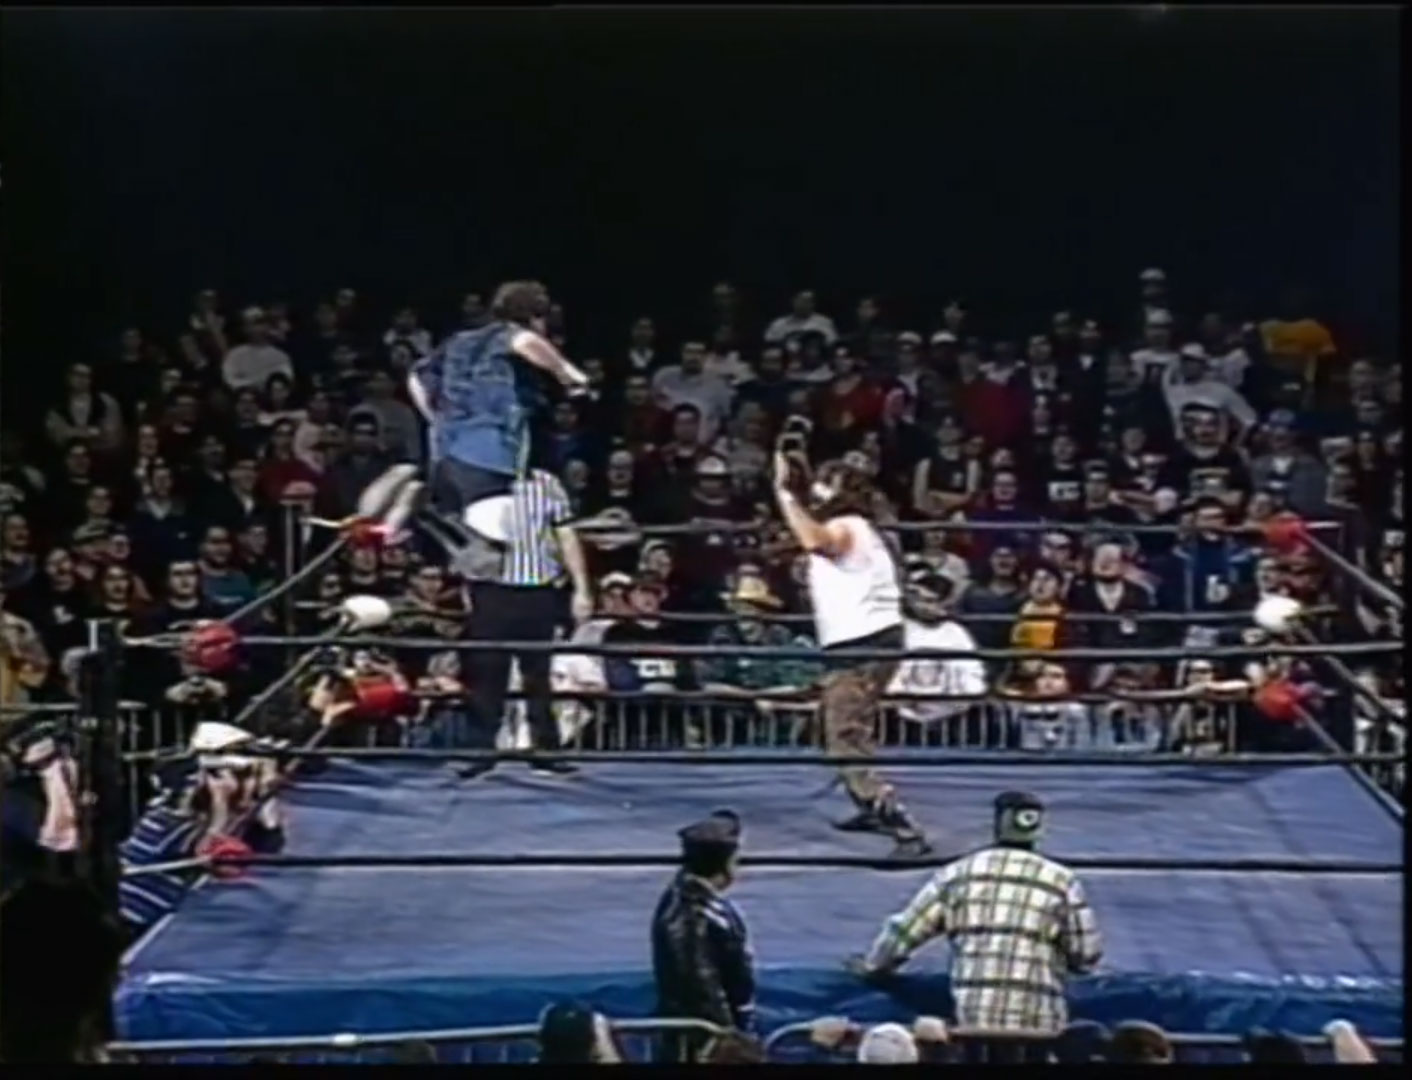 Mikey Whipwreck vs Cactus Jack ECW Hardcore TV March 26th 1996